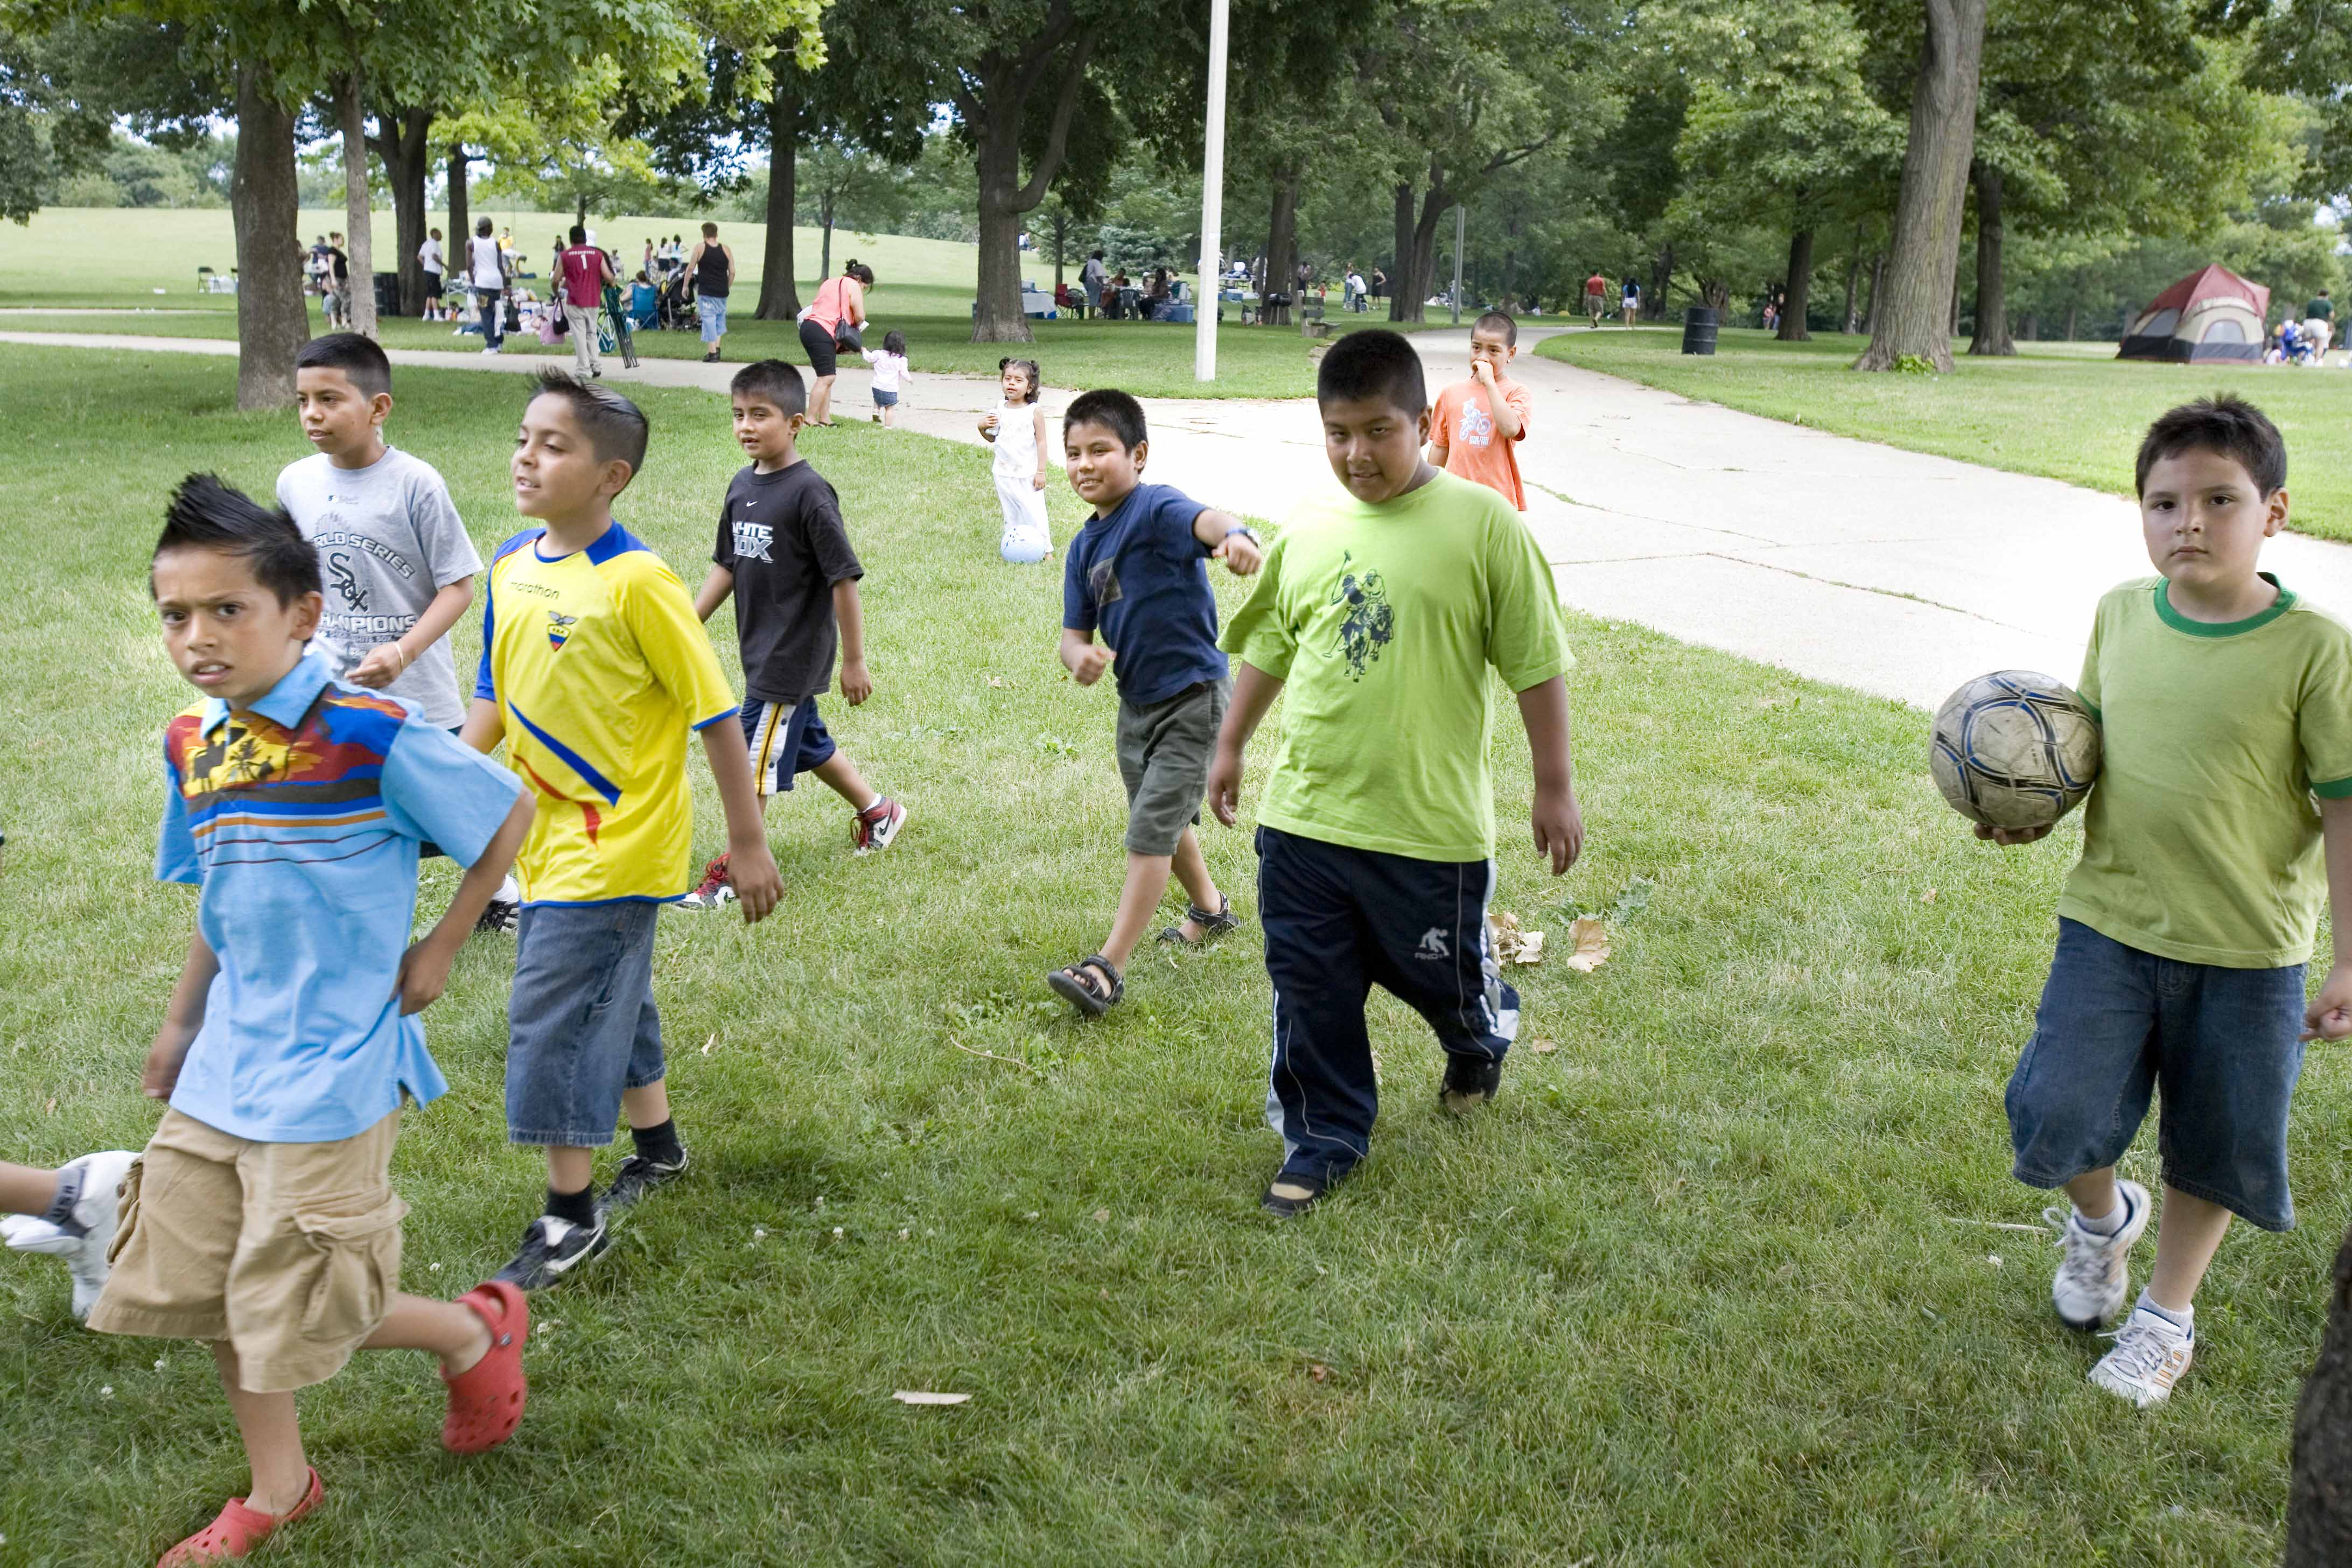 Soccer players get ready to kick it in Horner Park, a long riverfront park that stretches from Irving Park Road to Montrose Avenue, in the Irving Park neighborhood.